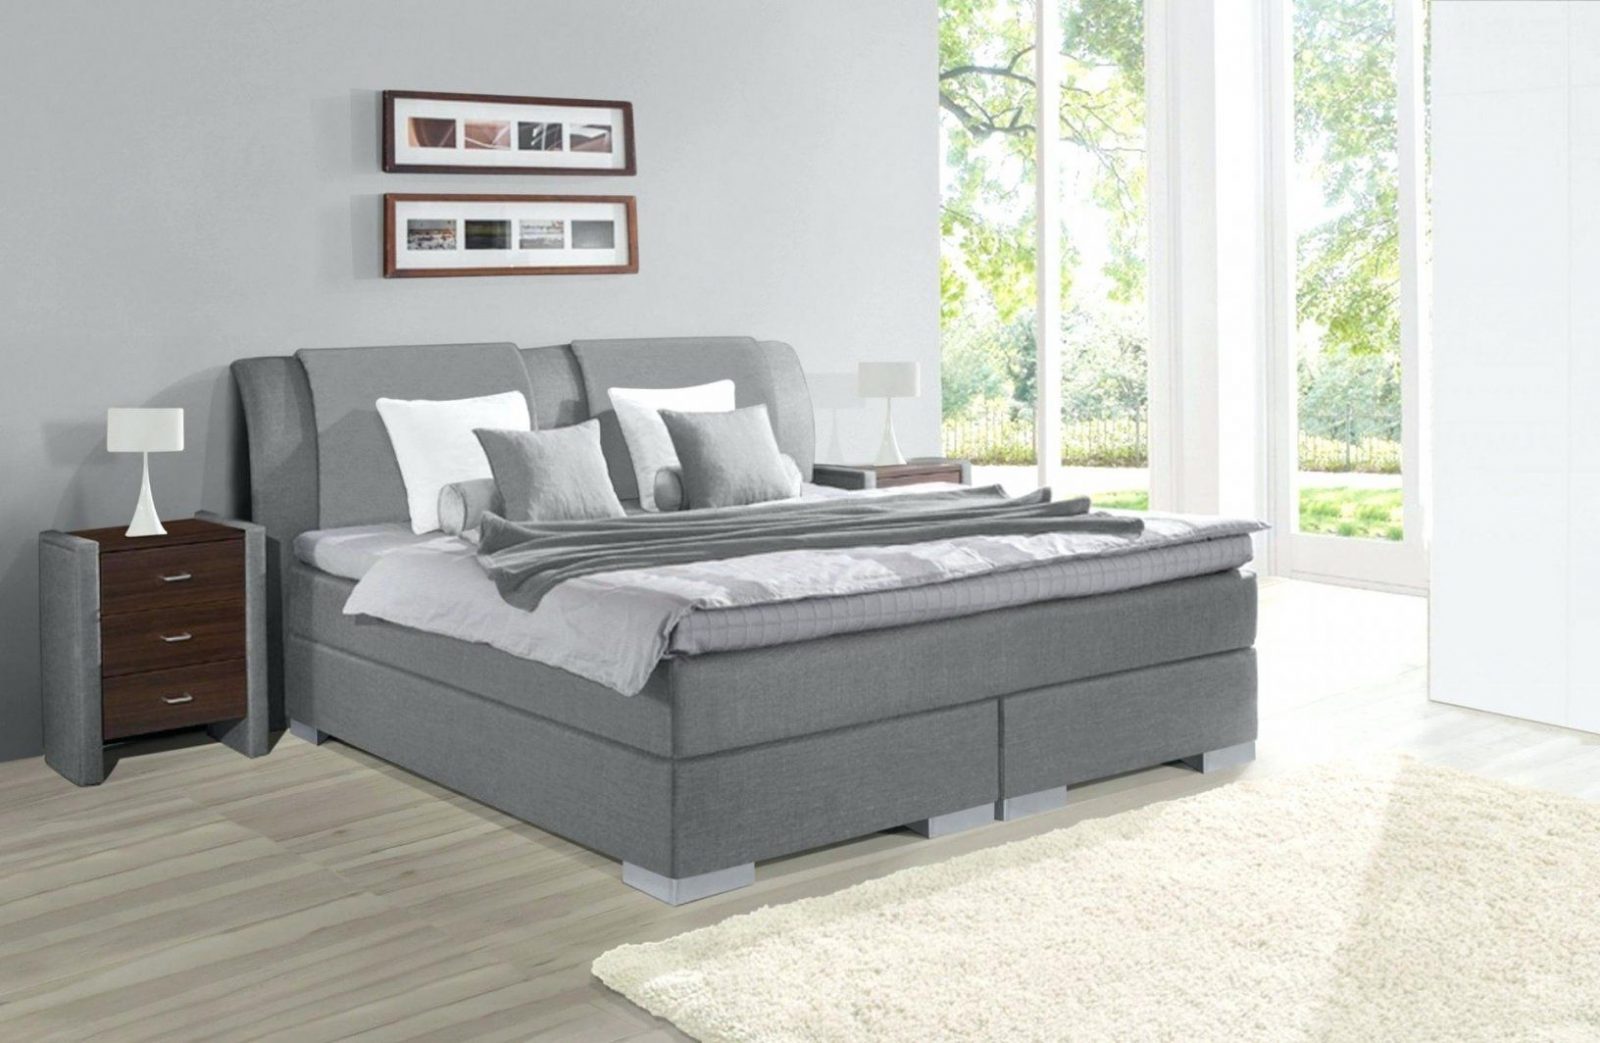 boxspringbett kaufen worauf achten haus design ideen. Black Bedroom Furniture Sets. Home Design Ideas